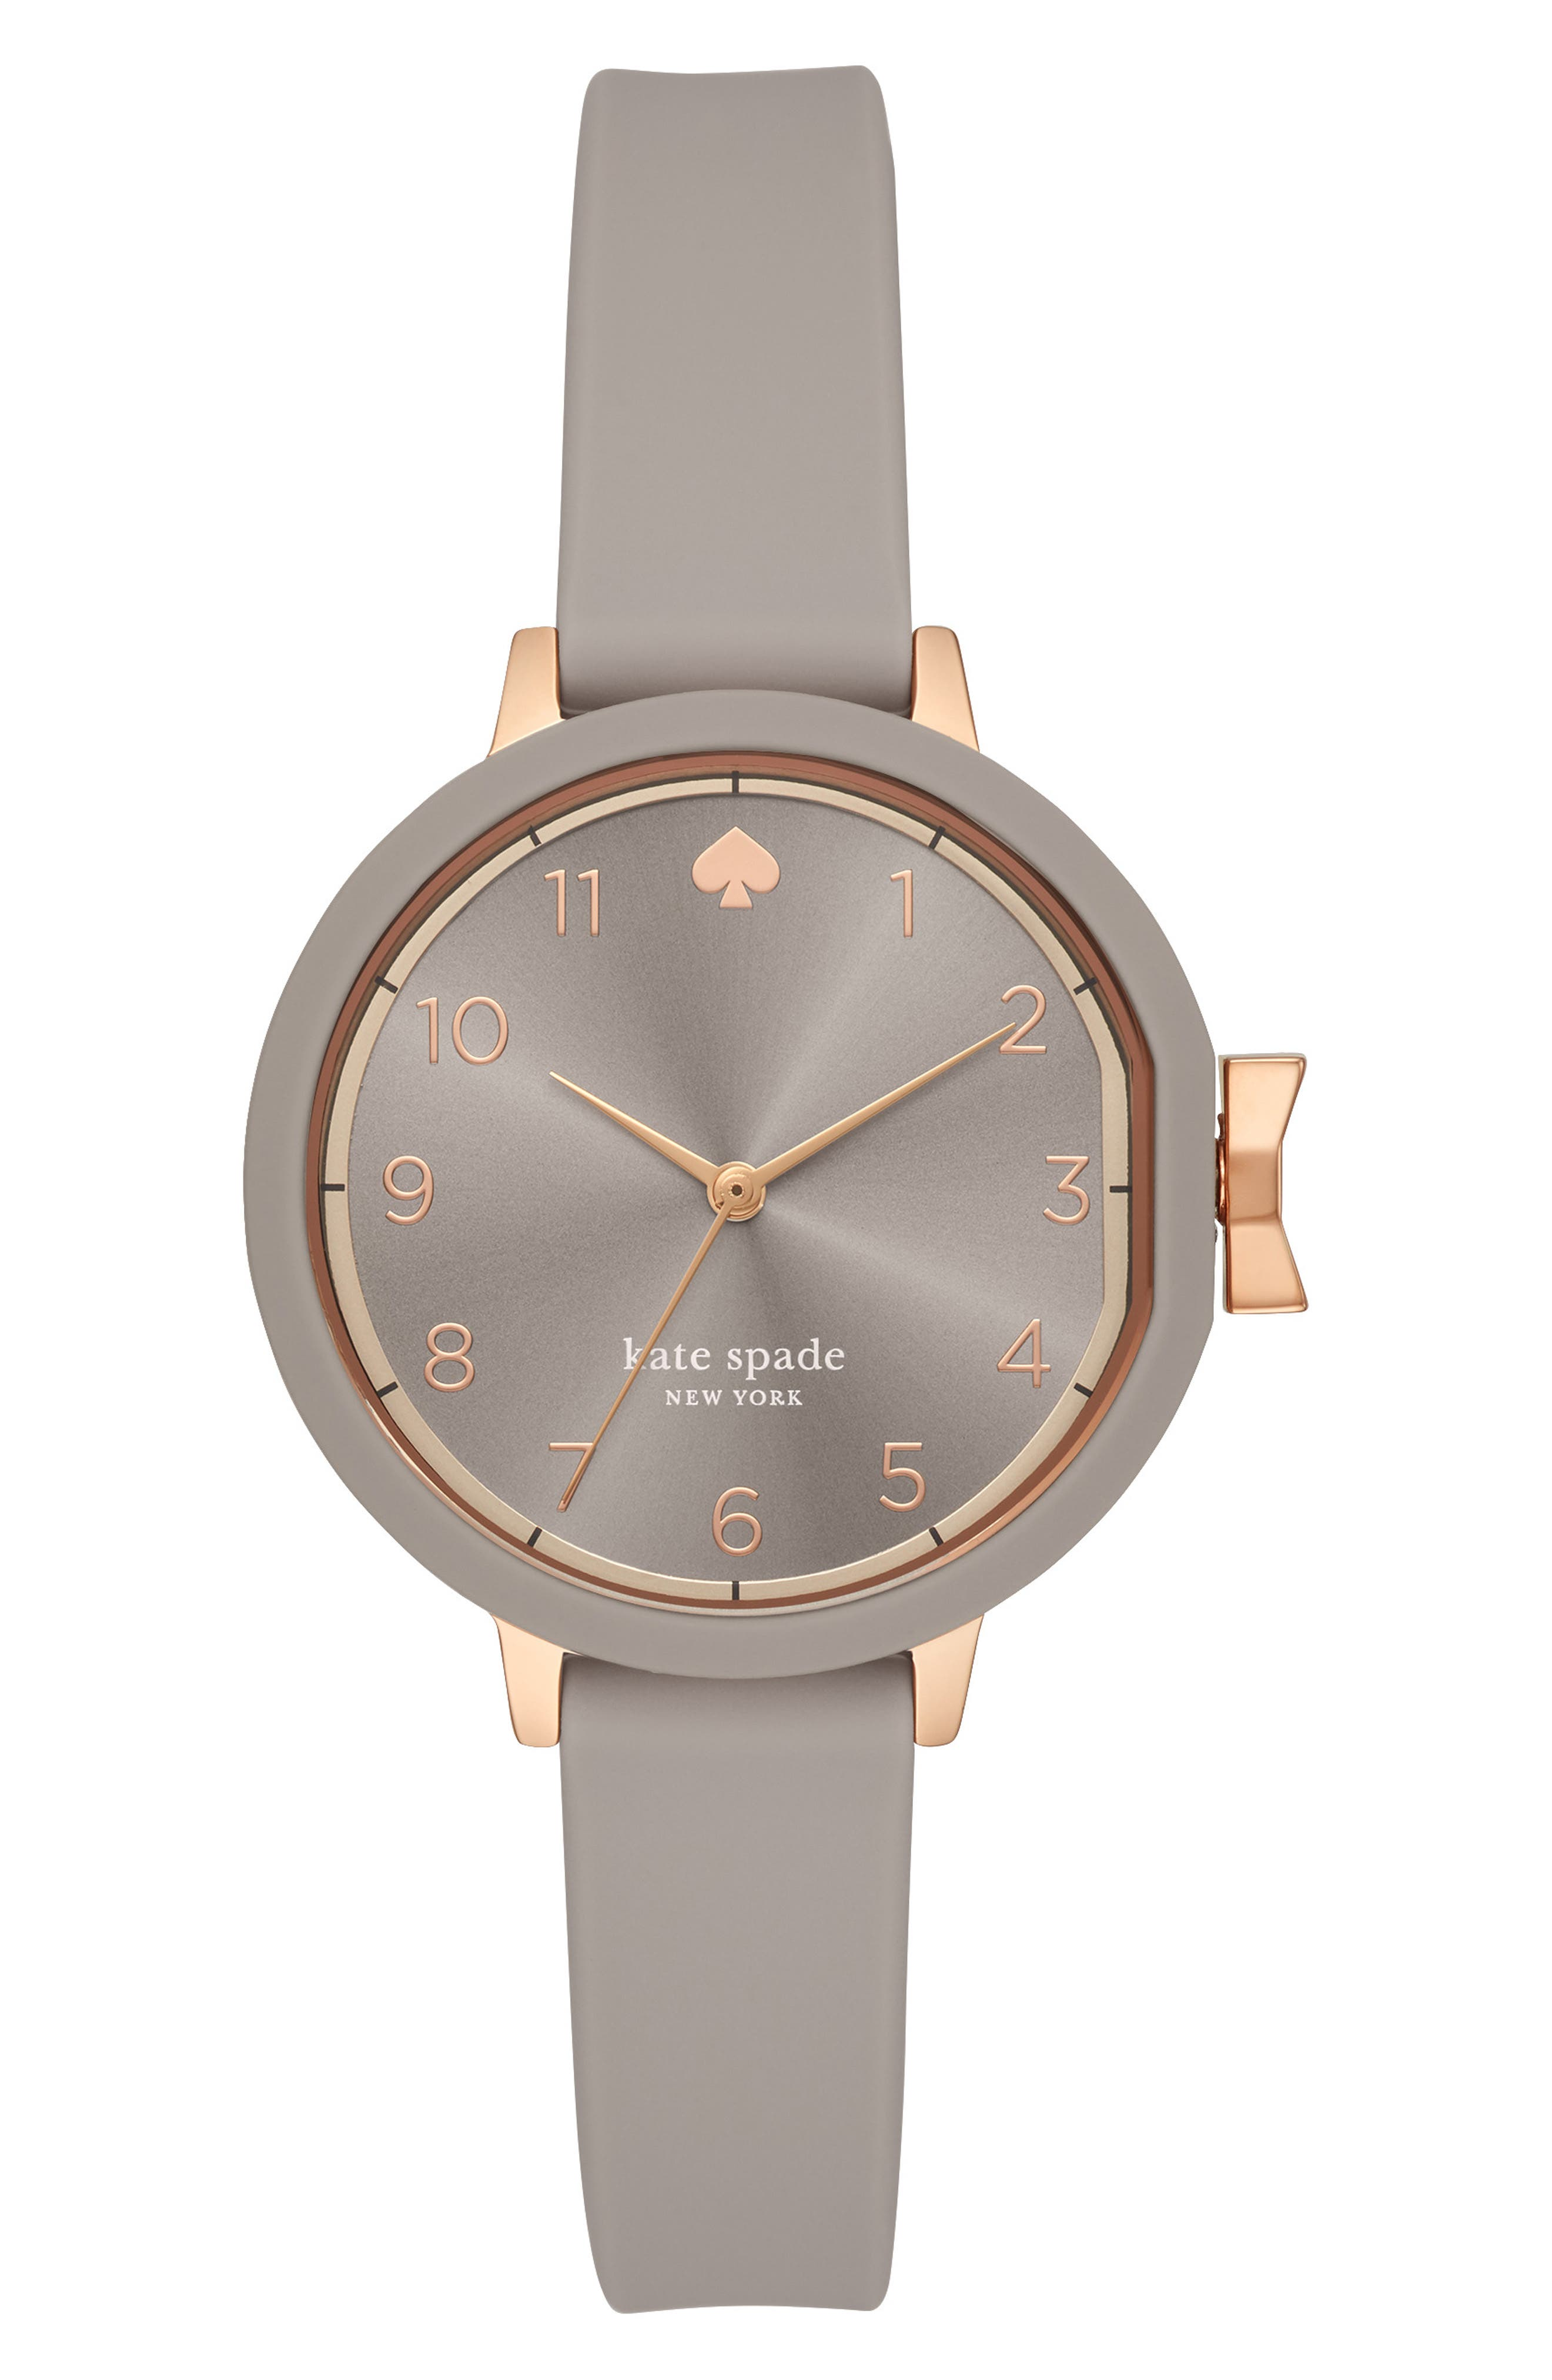 KATE SPADE NEW YORK, park row silicone strap watch, 34mm, Main thumbnail 1, color, GREY/ ROSE GOLD